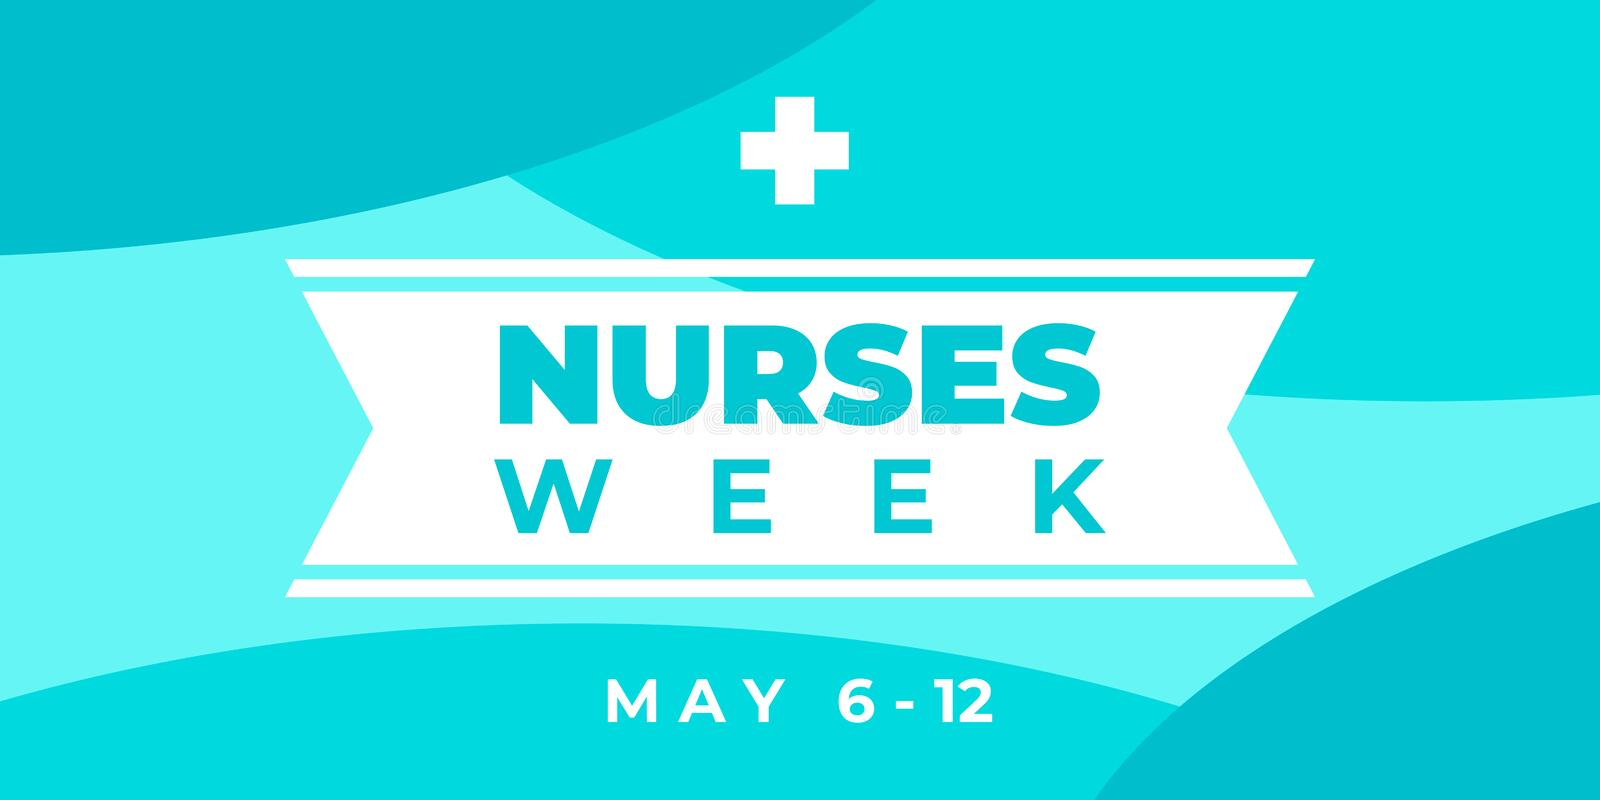 Nurses week. Vector horizontal banner for social media, Insta. National nurses day is celebrated from may 6 to 12. Greeting. Abstract illustration with text vector illustration